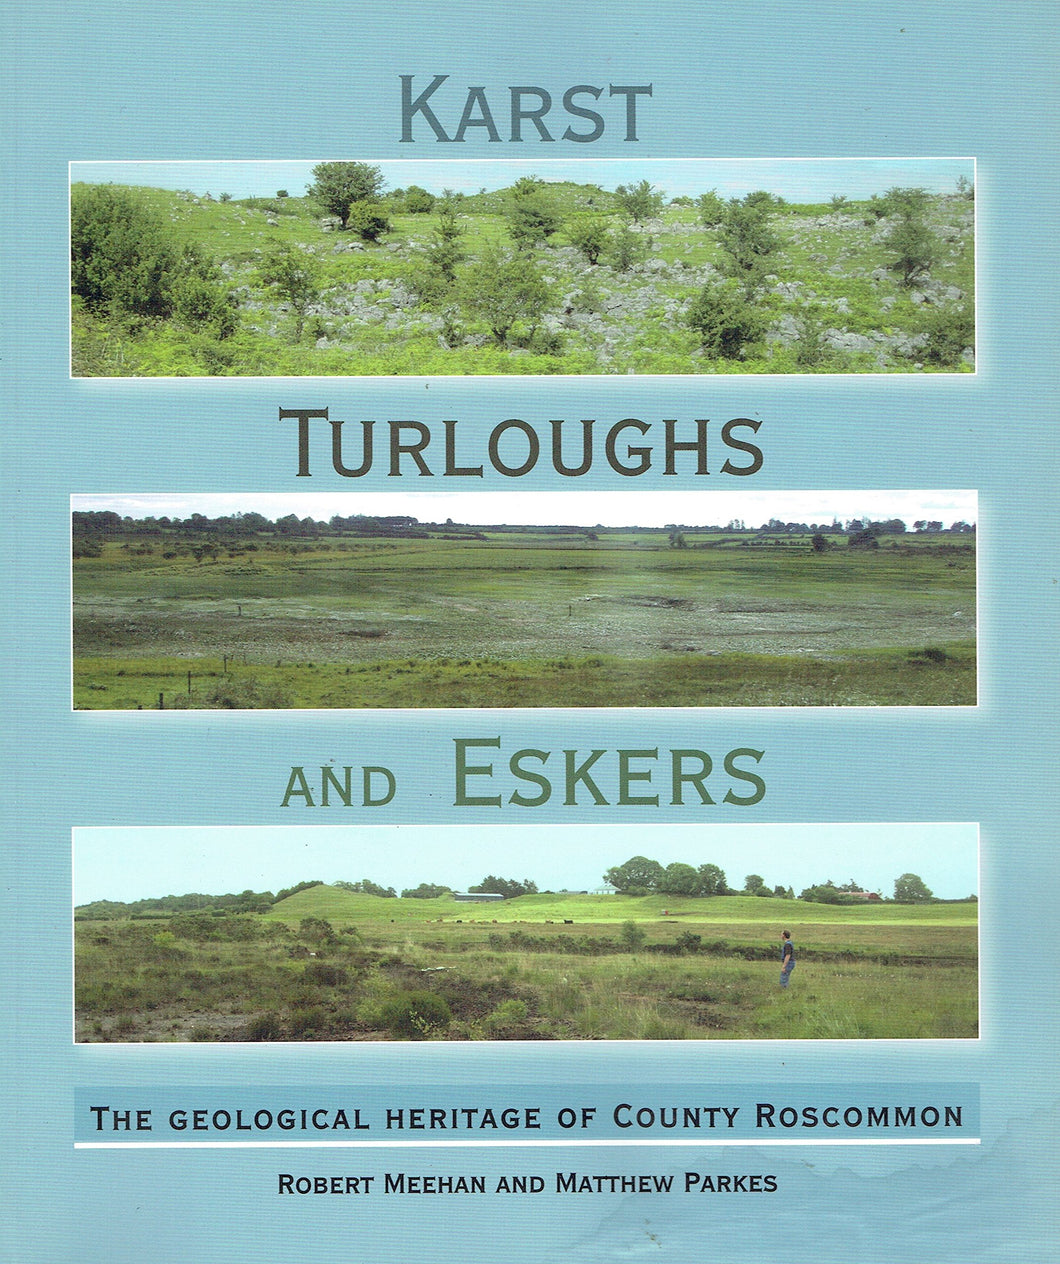 Karst, Turloughs and Eskers: The Geological Heritage of County Roscommon